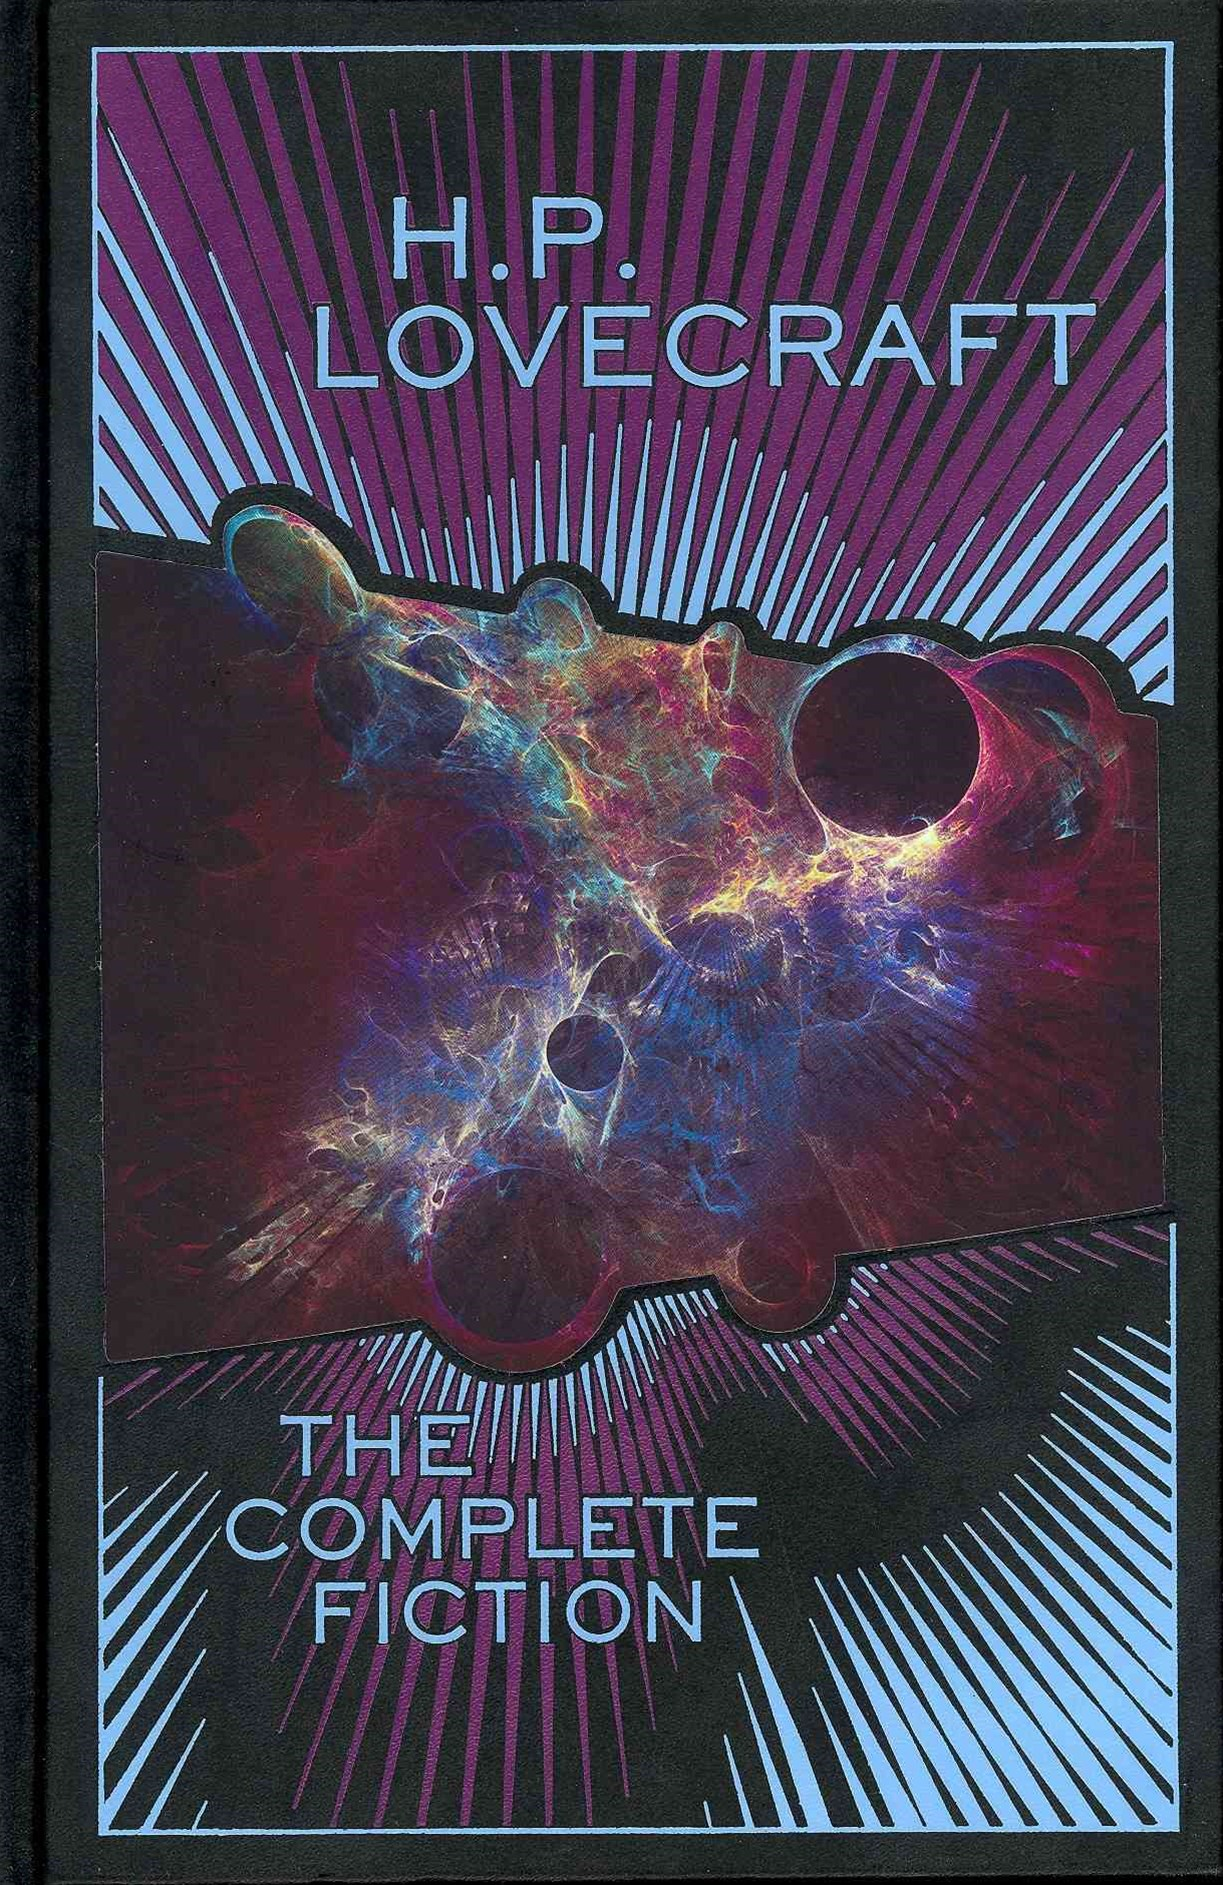 H.P. Lovecraft (Barnes & Noble Omnibus Leatherbound Classics)